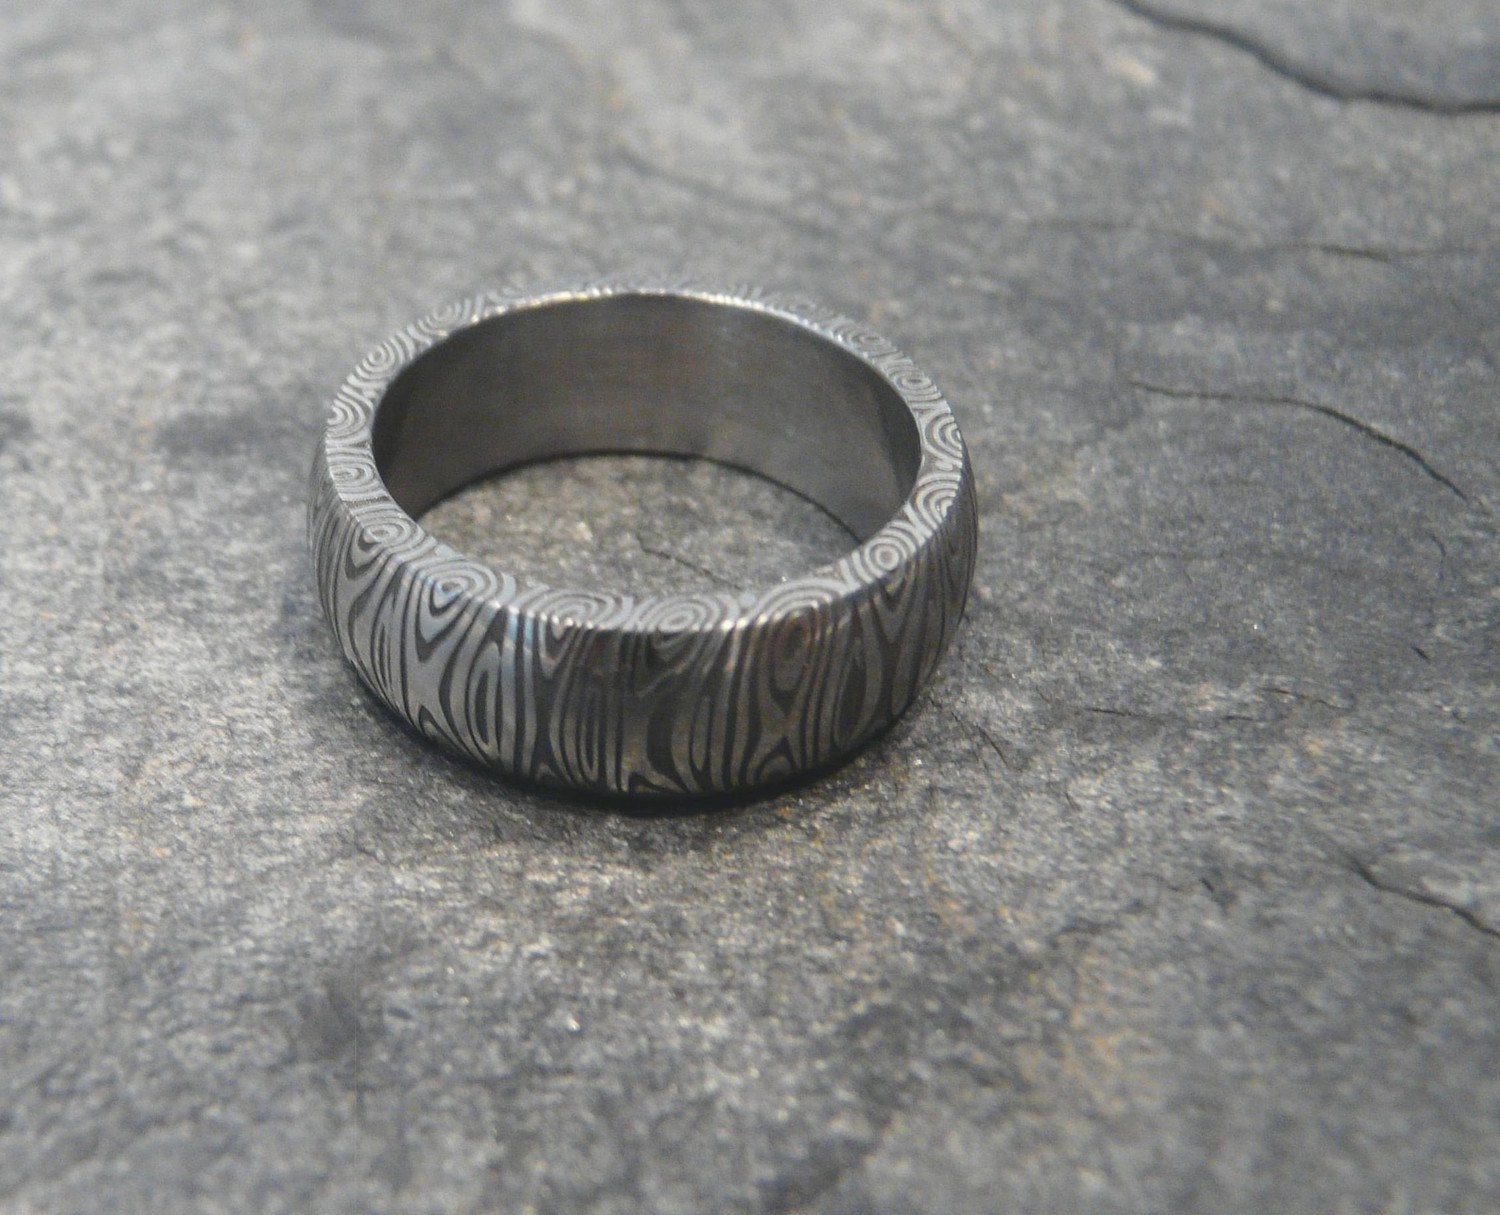 damascus stainless steel ring wedding damascus wedding band Damascus Stainless Steel Ring Wedding Band Hand Made zoom